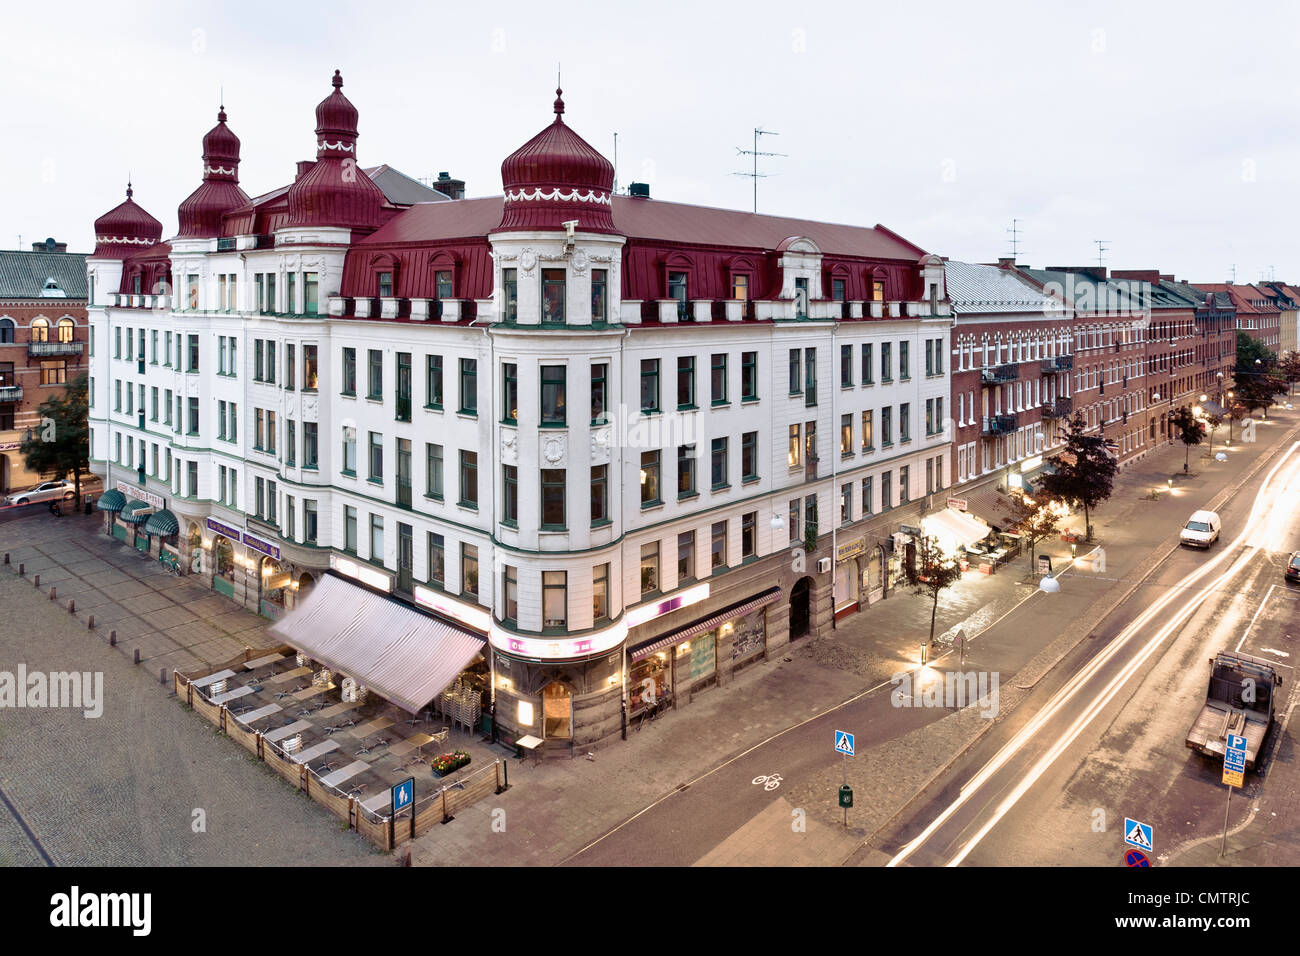 High angle view of building and street Photo Stock